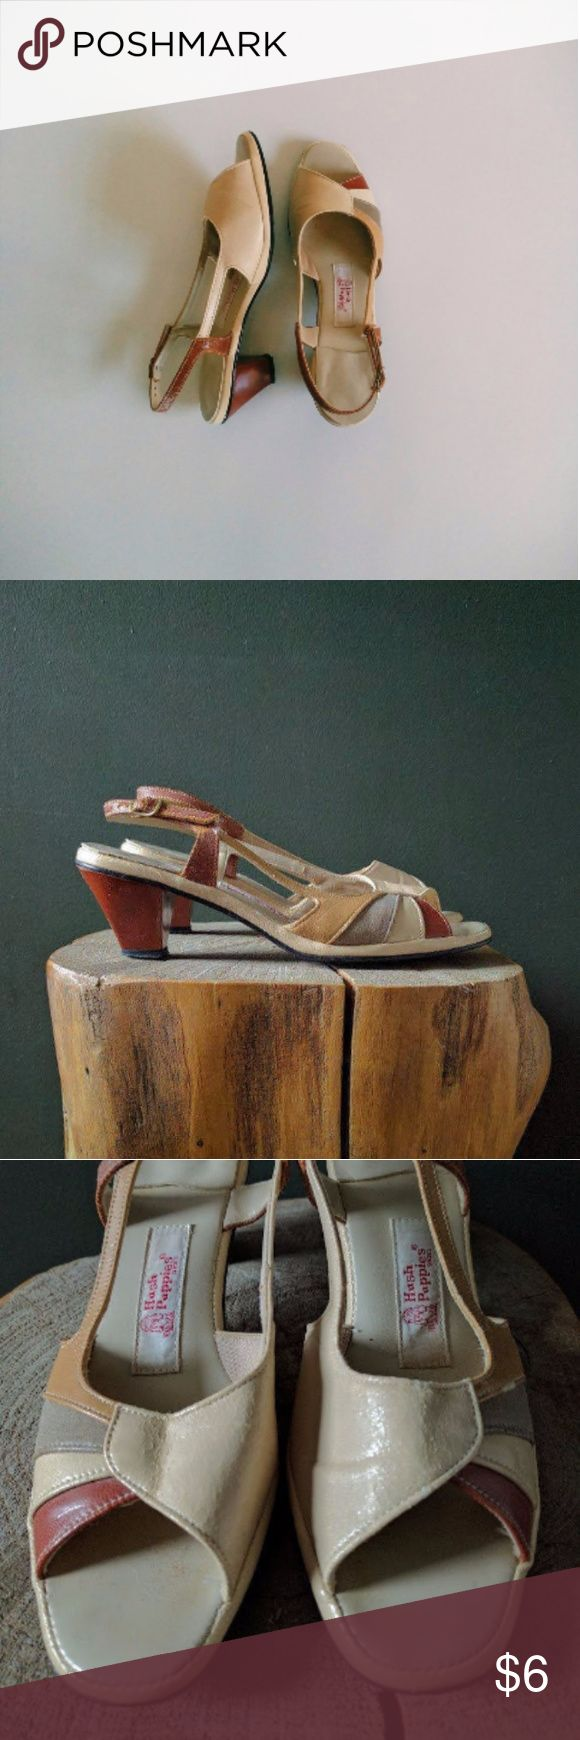 """Vintage 70's Cream Striped Slingback Sandals Brand: Hush Puppies Faux leather uppers Adjustable heel strap Open toe 2"""" heel  Condition Good vintage condition. Uppers have areas showing minor wear. Good shape overall and lots of life left to live. Hush Puppies Shoes Sandals"""